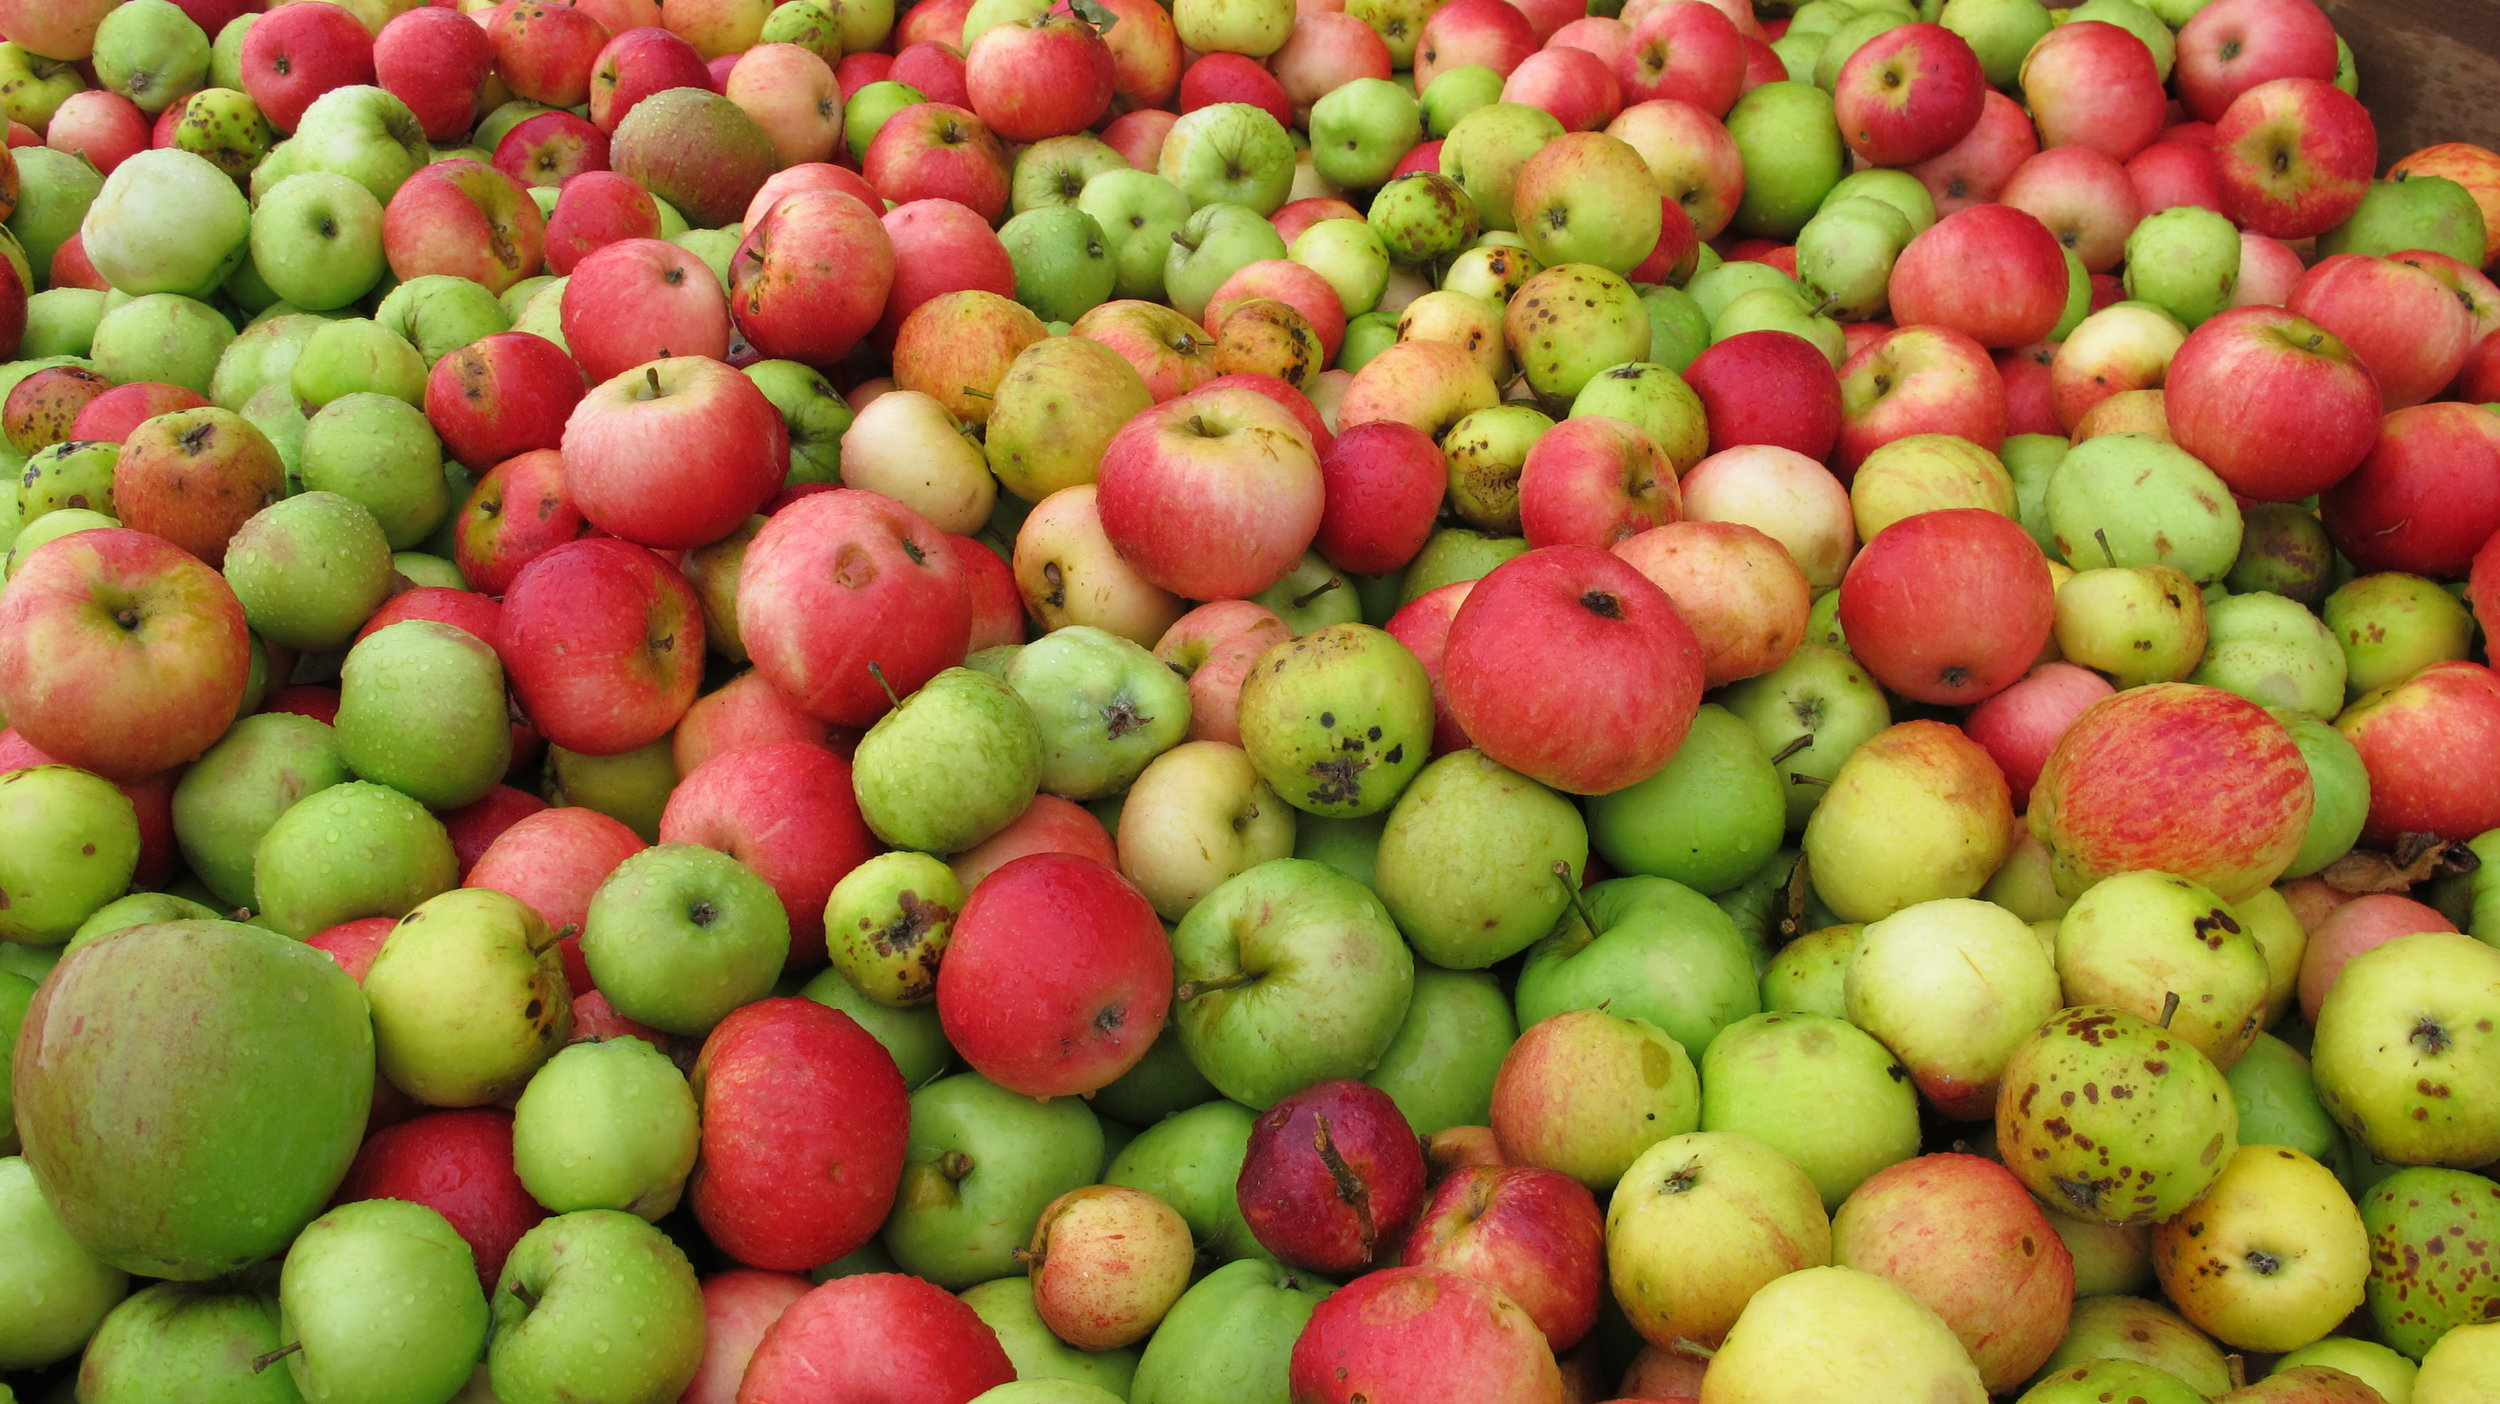 Scottish apples of many varieties all but disappeared in the late 19th century but today are enjoying a comeback that is fueling the newest sector of the Scottish drinks industry, cider.